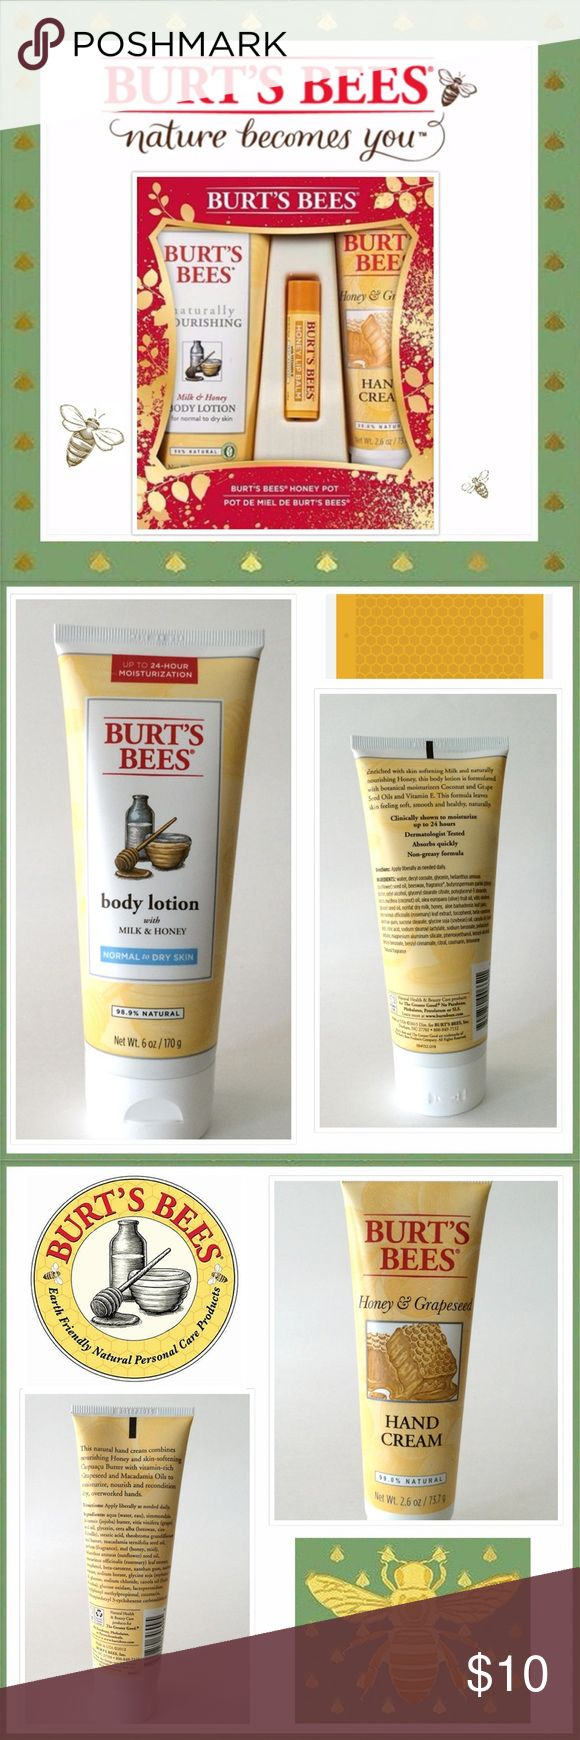 New Burt's Bees Gift Set~ 3 Piece New Burt's Bees Gift Set. Makeup Lip Balm & Gloss